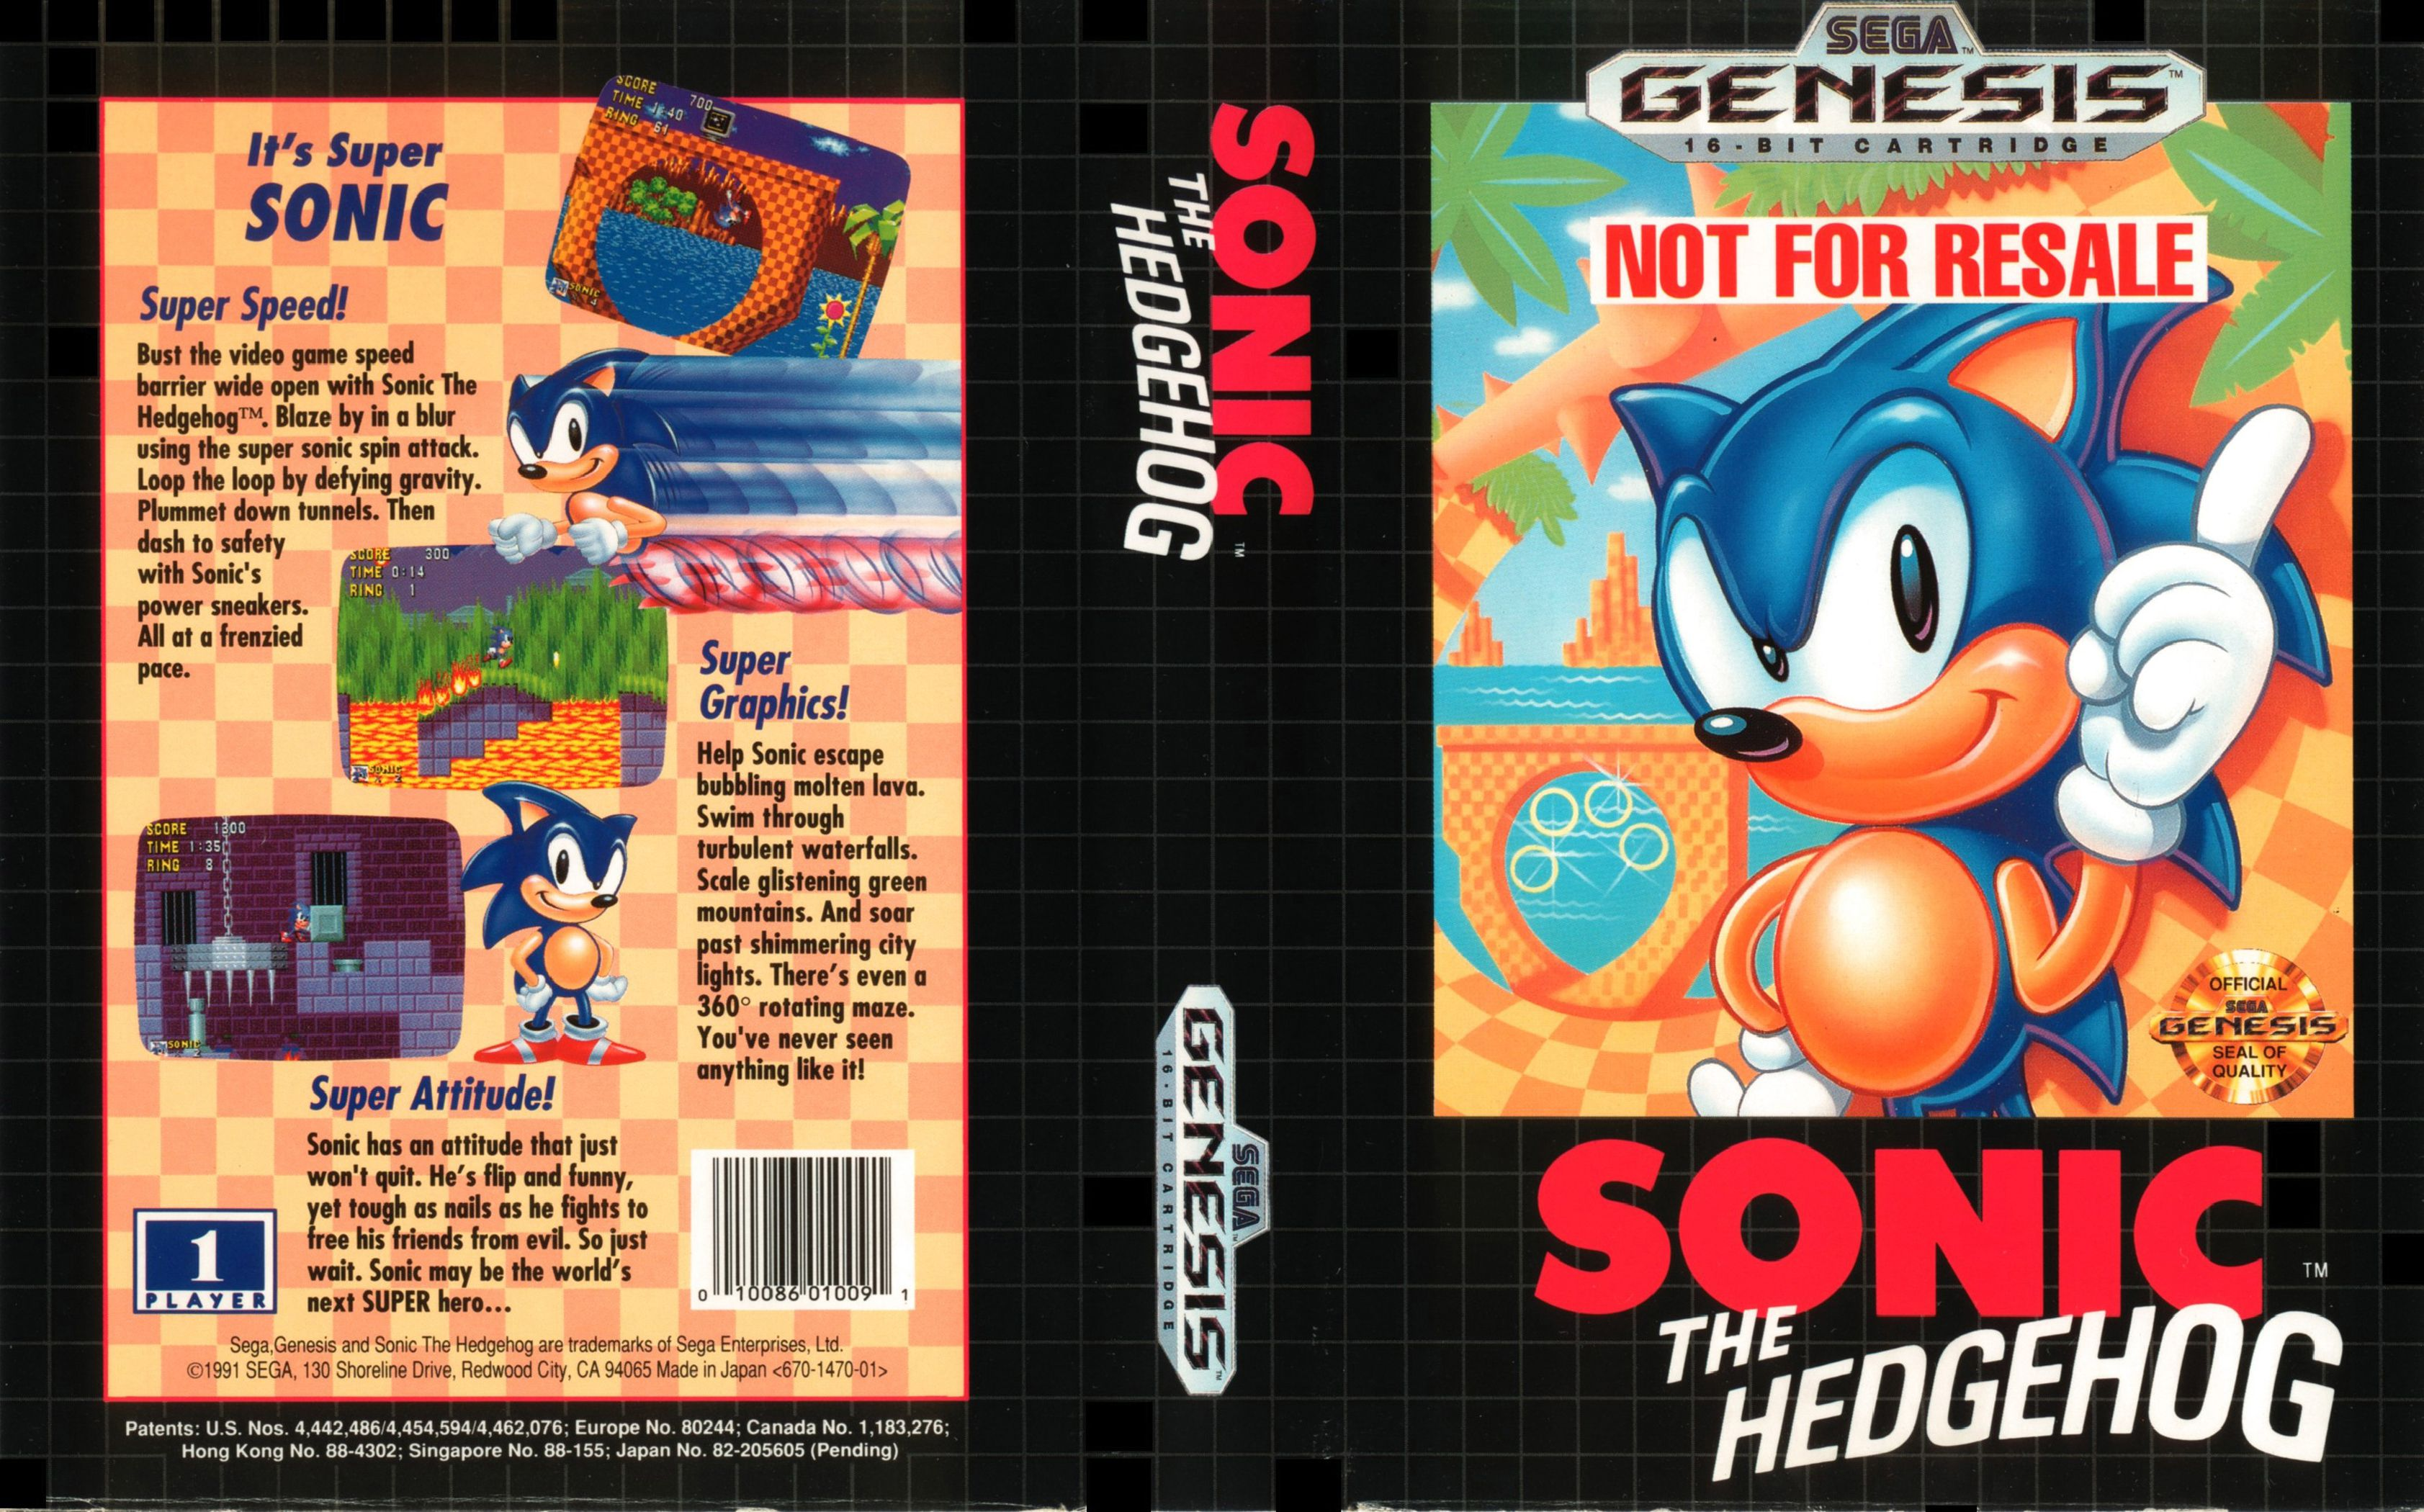 History Of Sonic The Hedgehog By Sega Genesis